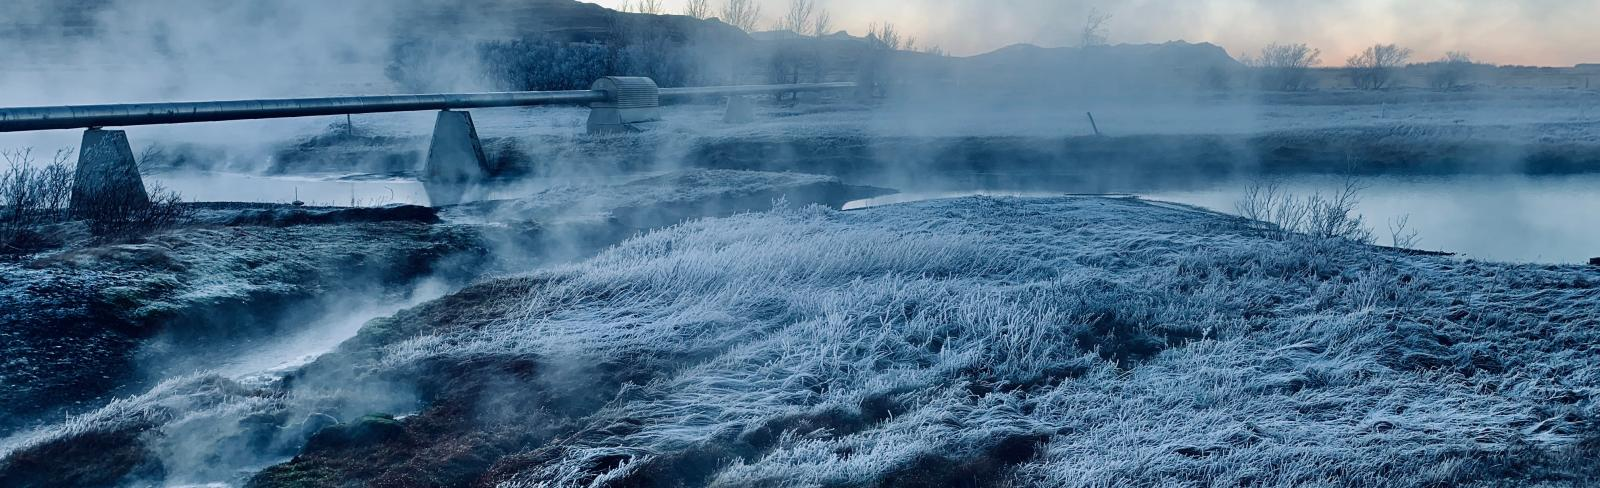 Geothermal Baths, Iceland. Photo by Joey Clover.